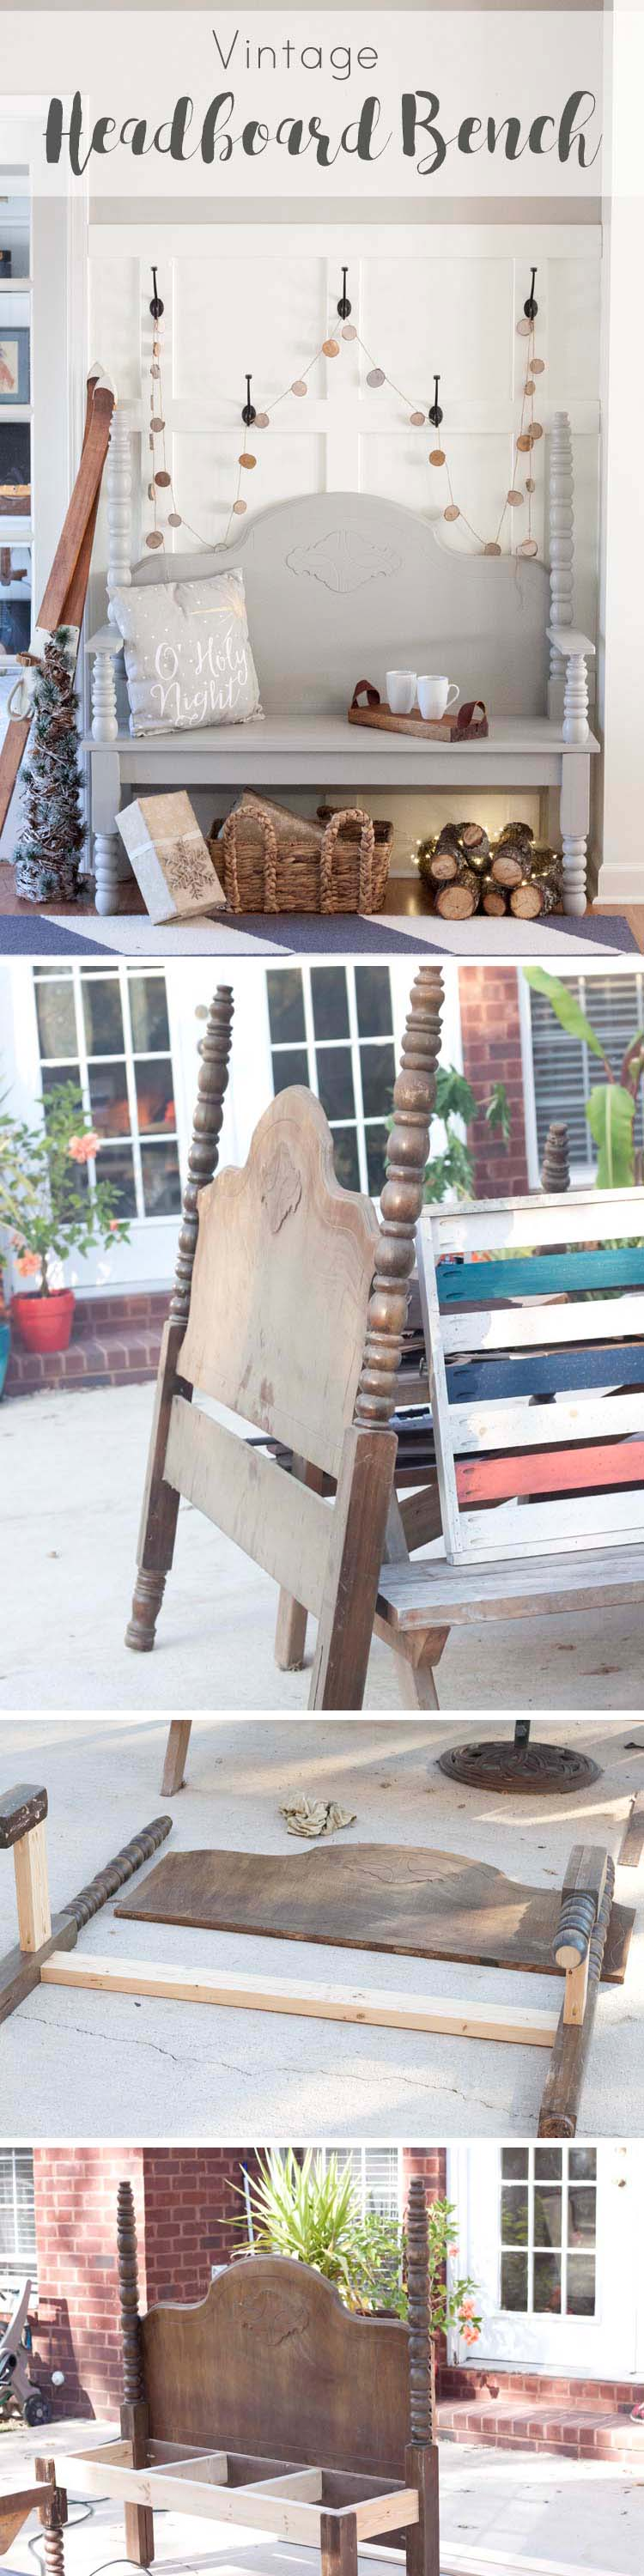 DIY Vintage Headboard Bench